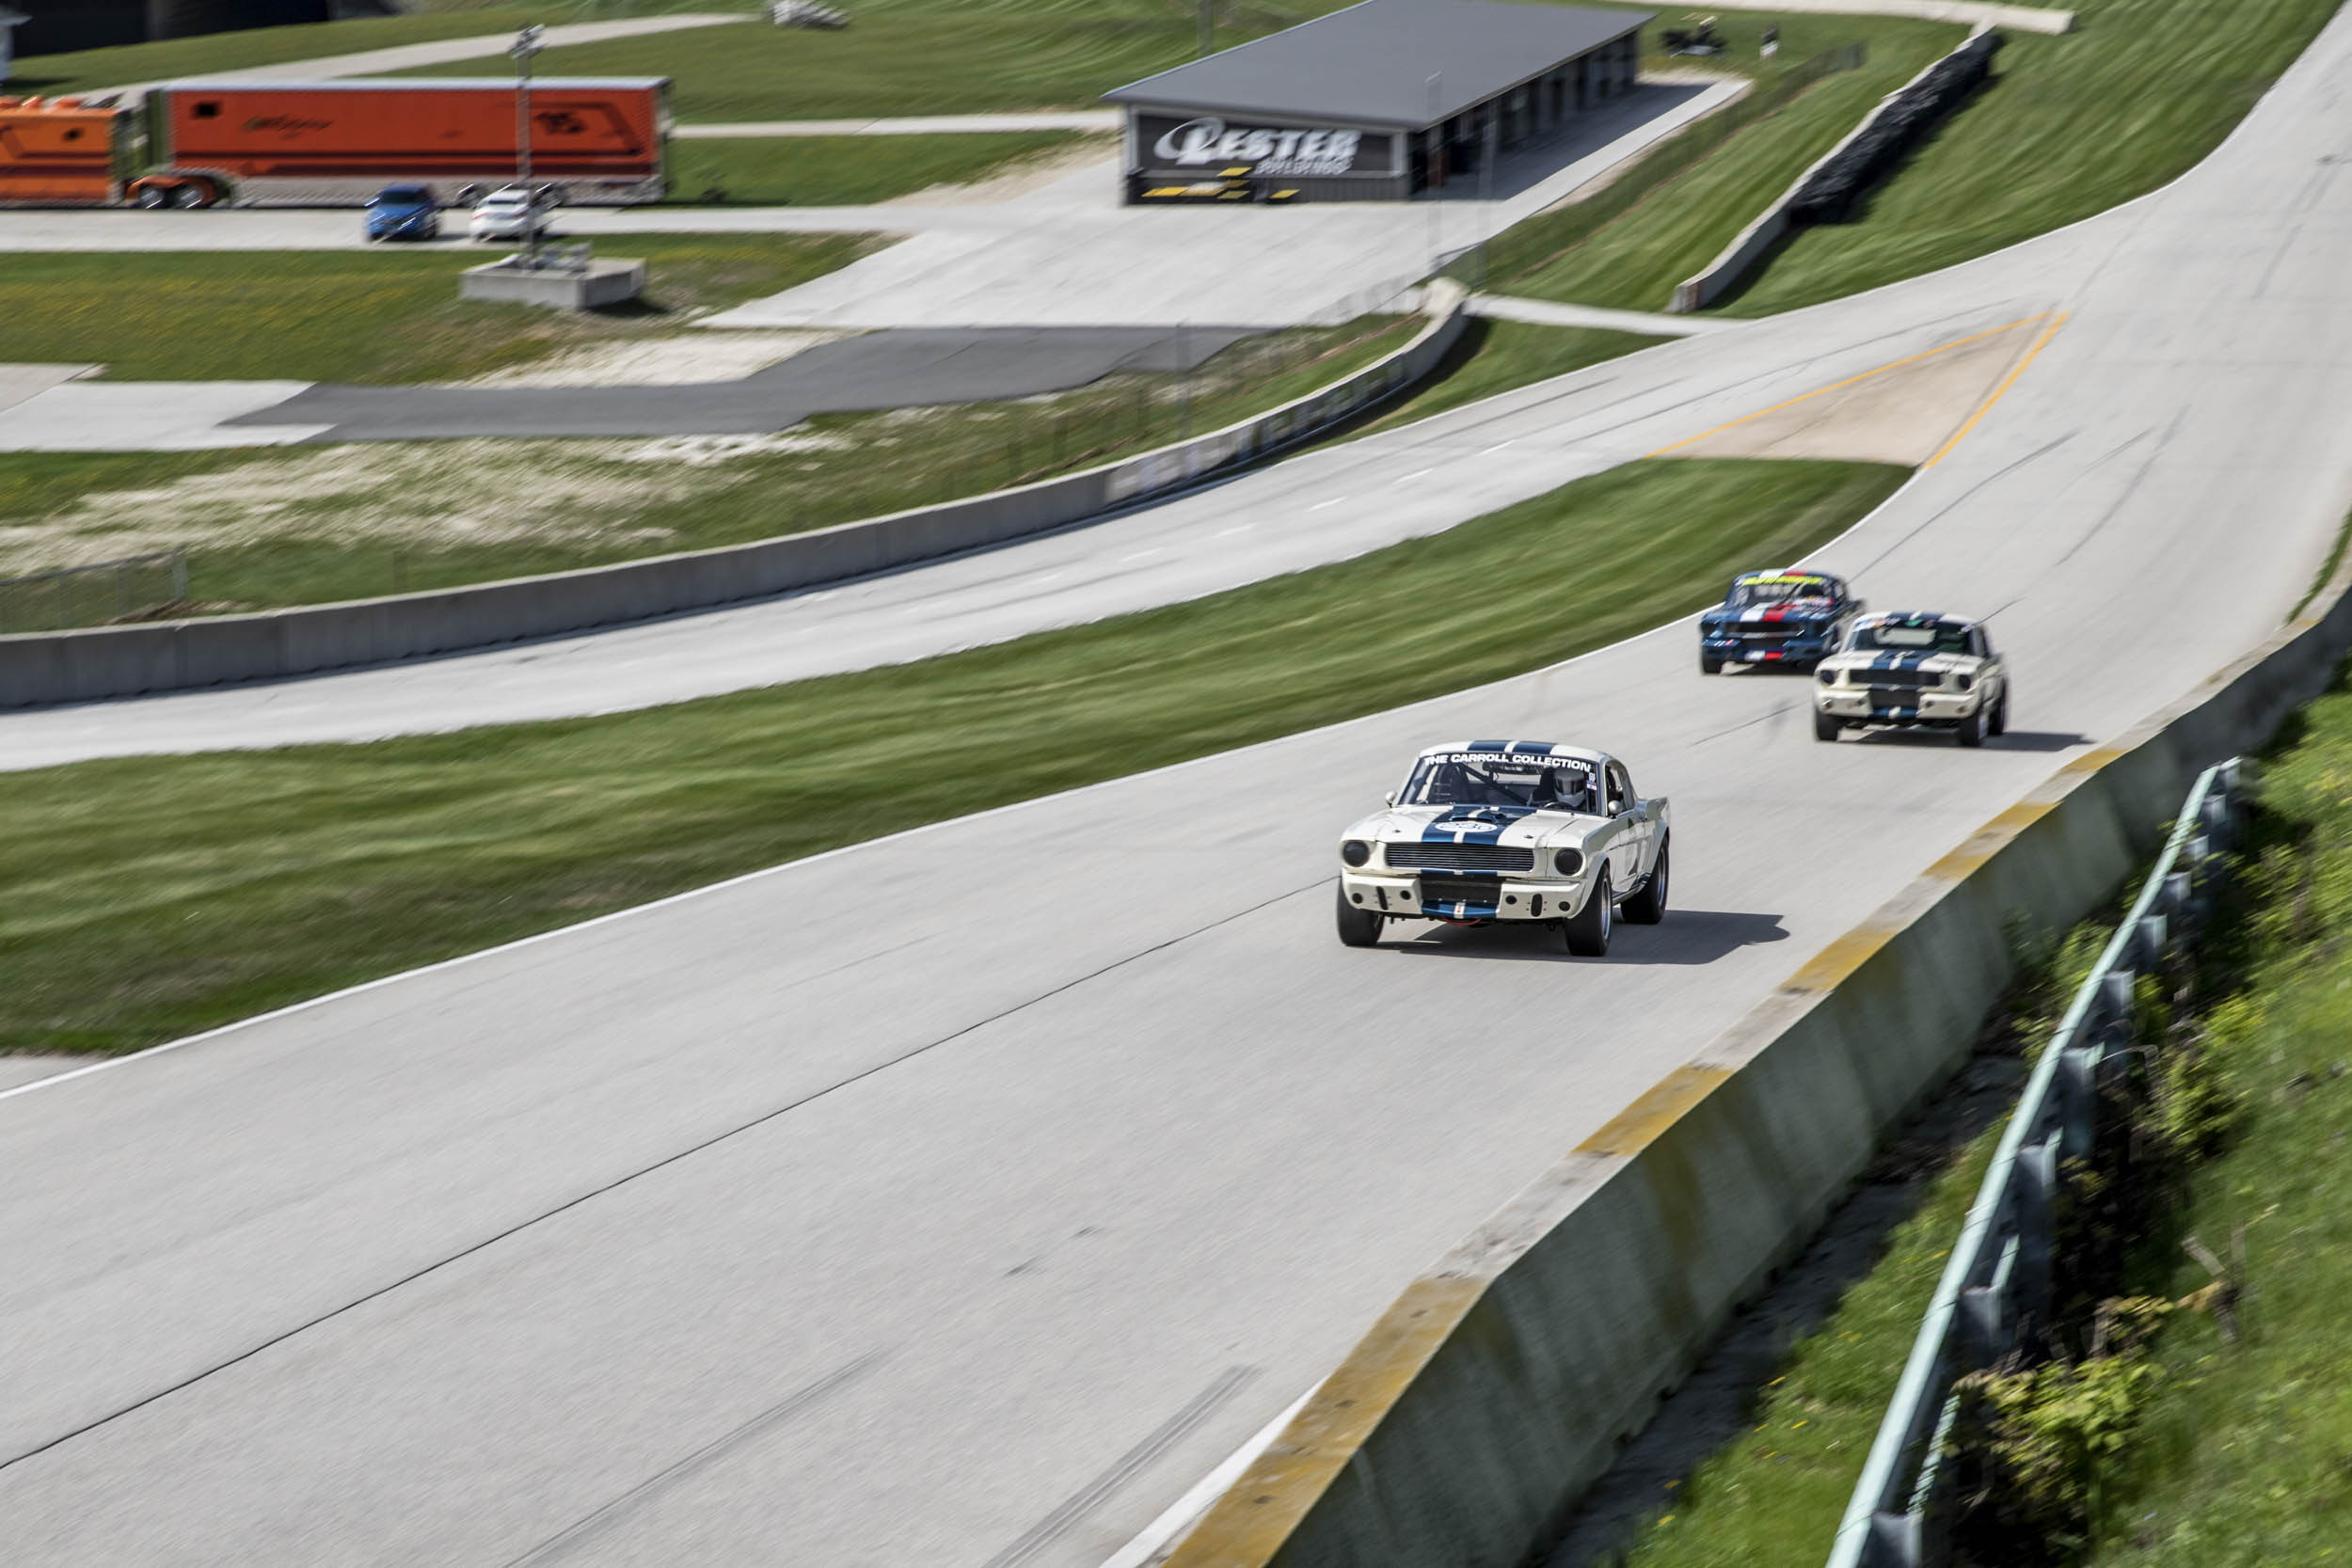 A trio of unmuffled Mustangs thunders up the main straight. Standing trackside leads one to wonder if the Ford small-block has the most soulful wail of any V-8.